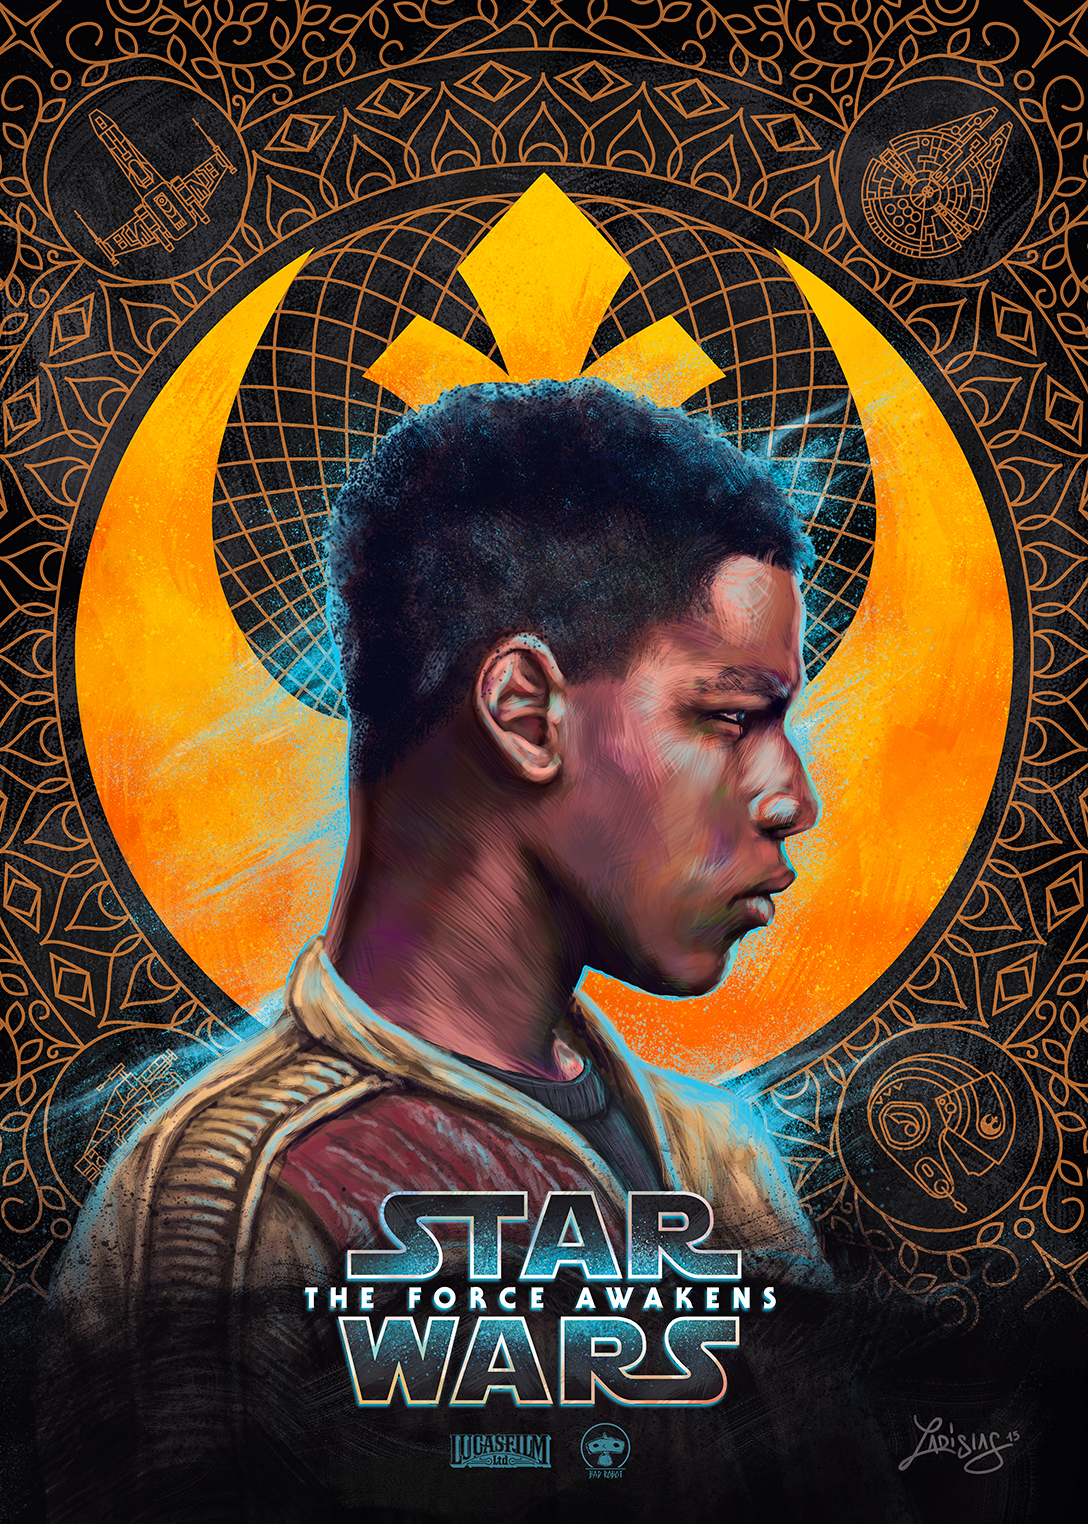 WEBHD-Star-Wars-Awakens-Alternative-posterRebels